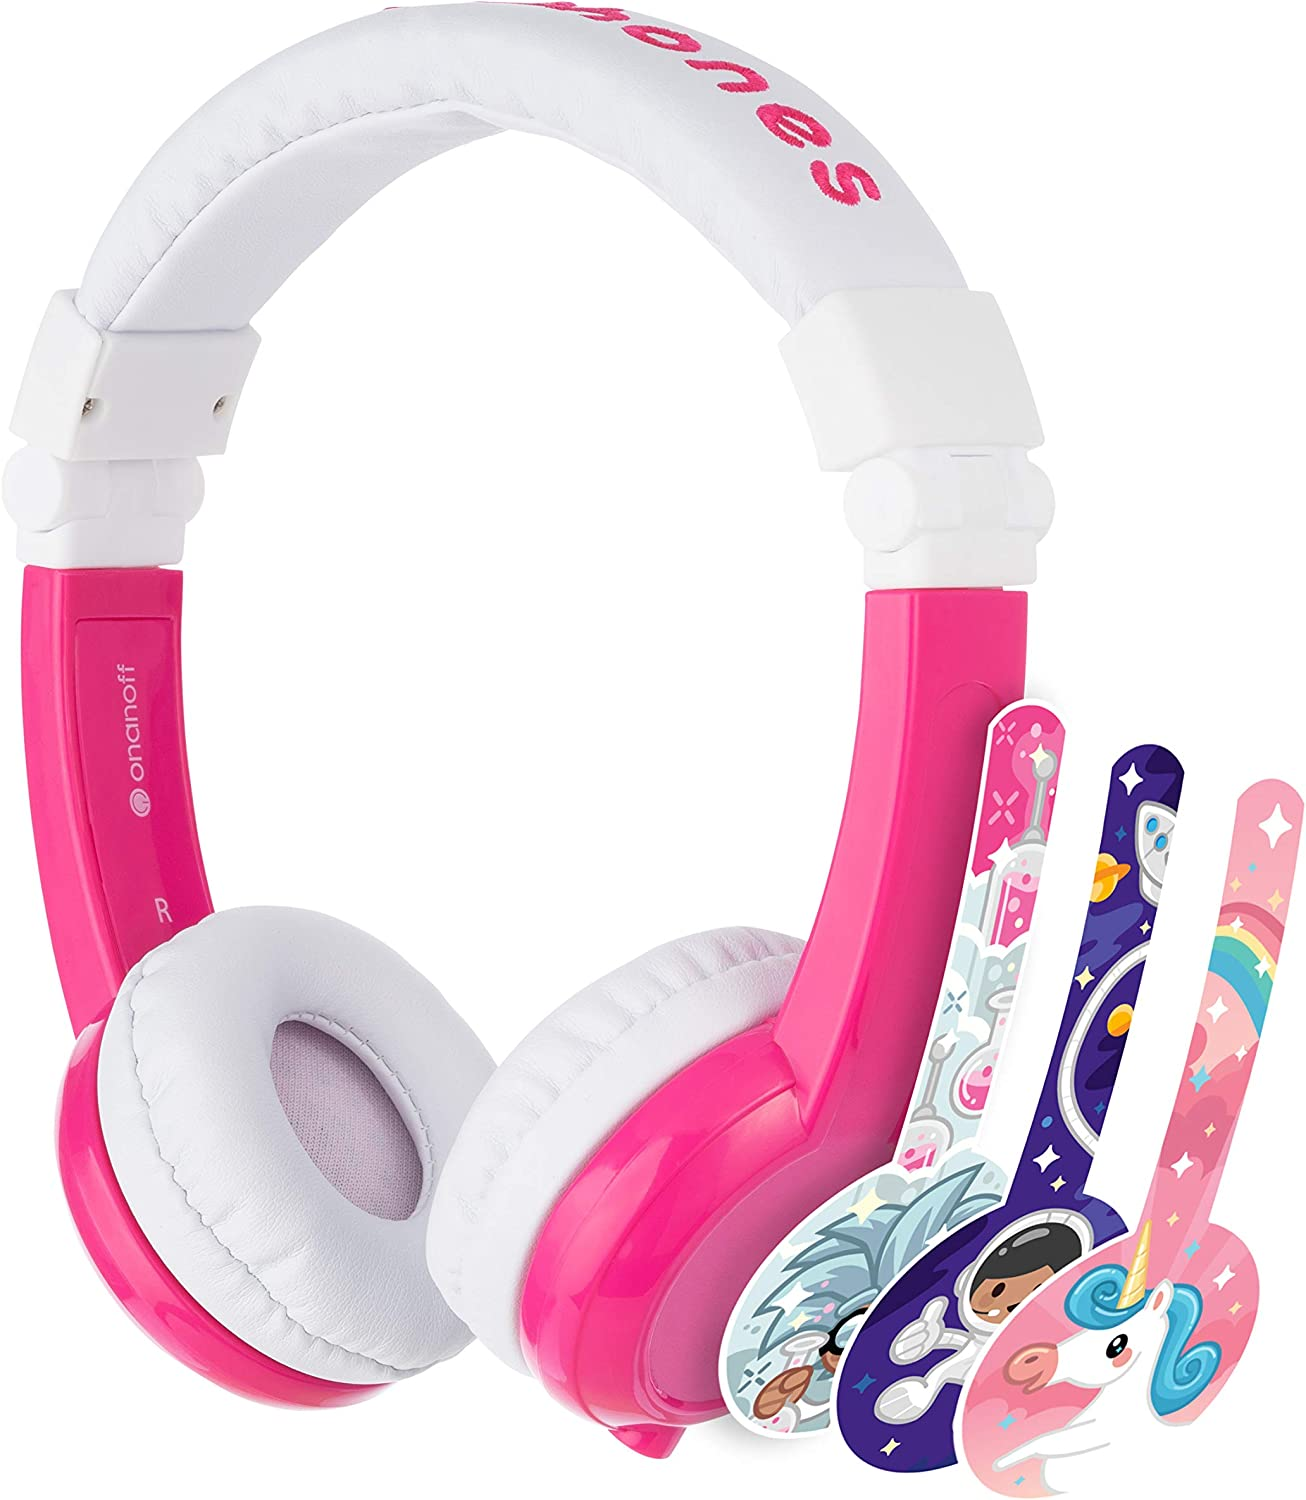 ONANOFF BuddyPhones Explore Foldable, Volume-Limiting Kids Headphones with Travel Bag, Built-In Audio Sharing Cable with Mic, Compatible with Fire, iPad, iPhone, and Android Devices, Pink